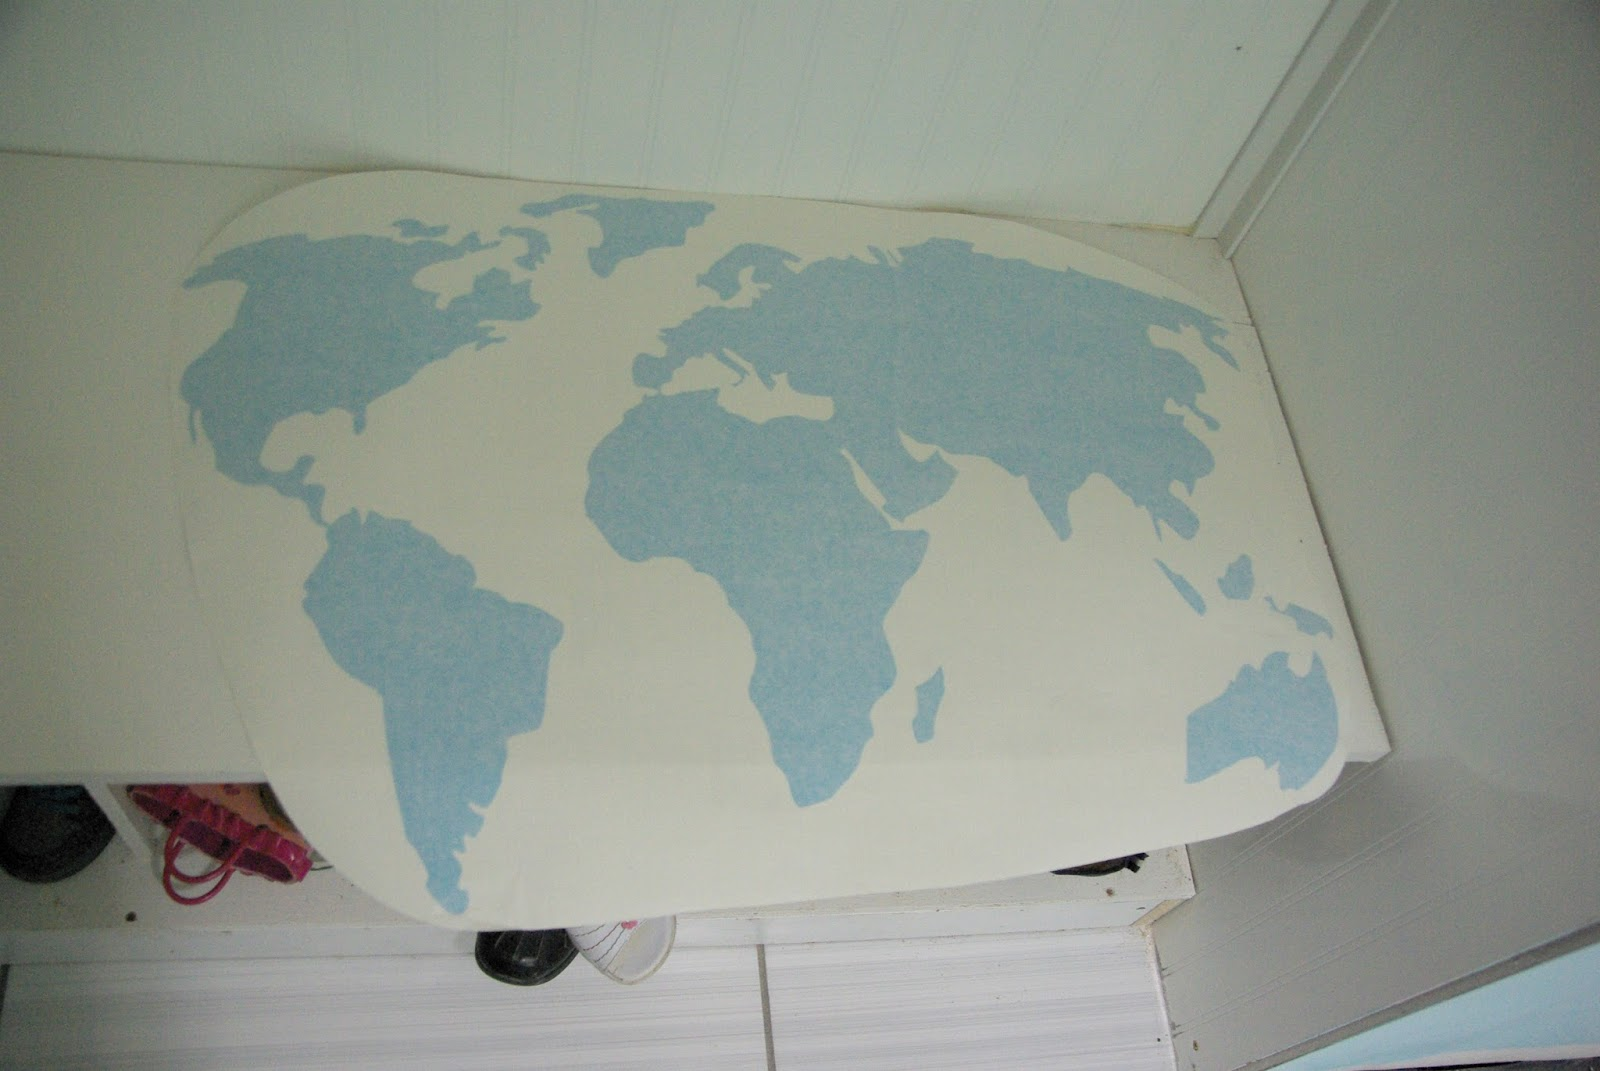 World map wall decal more additions to the organization station the wall decal was shipped to me and came in a round container so when it came out i had to lay it down flat over night to get it well flat amipublicfo Gallery